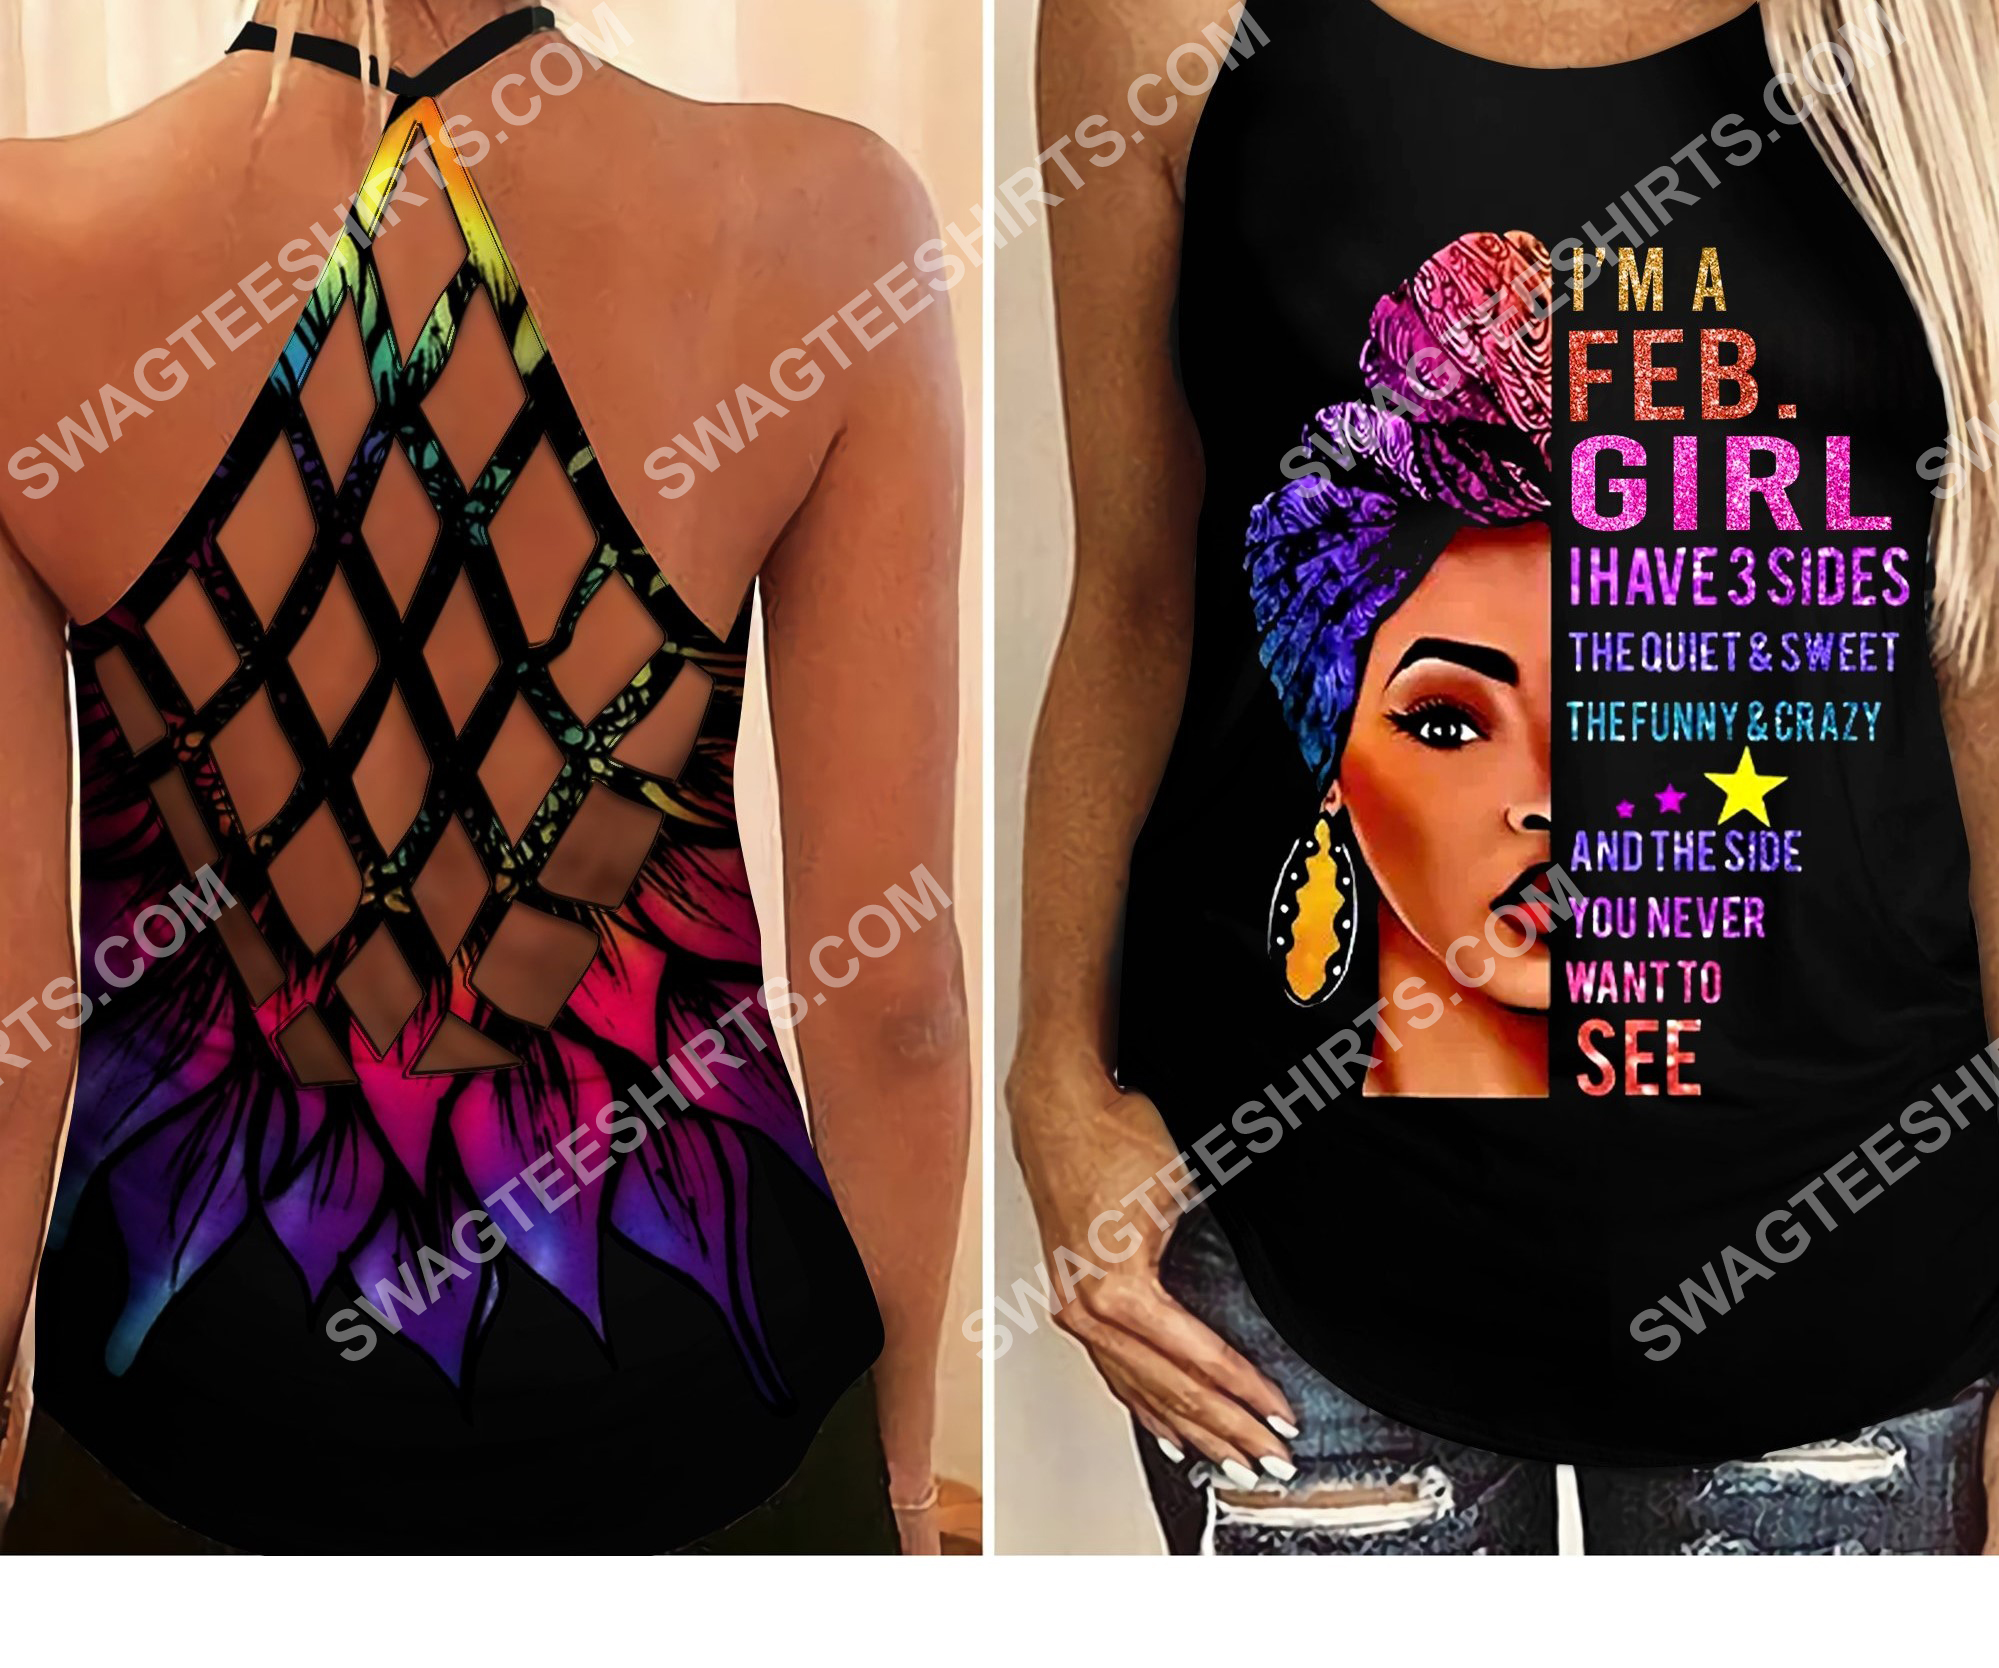 i'm a february girl i have 3 sides the quiet and sweet all over printed criss-cross tank top 2 - Copy (2)